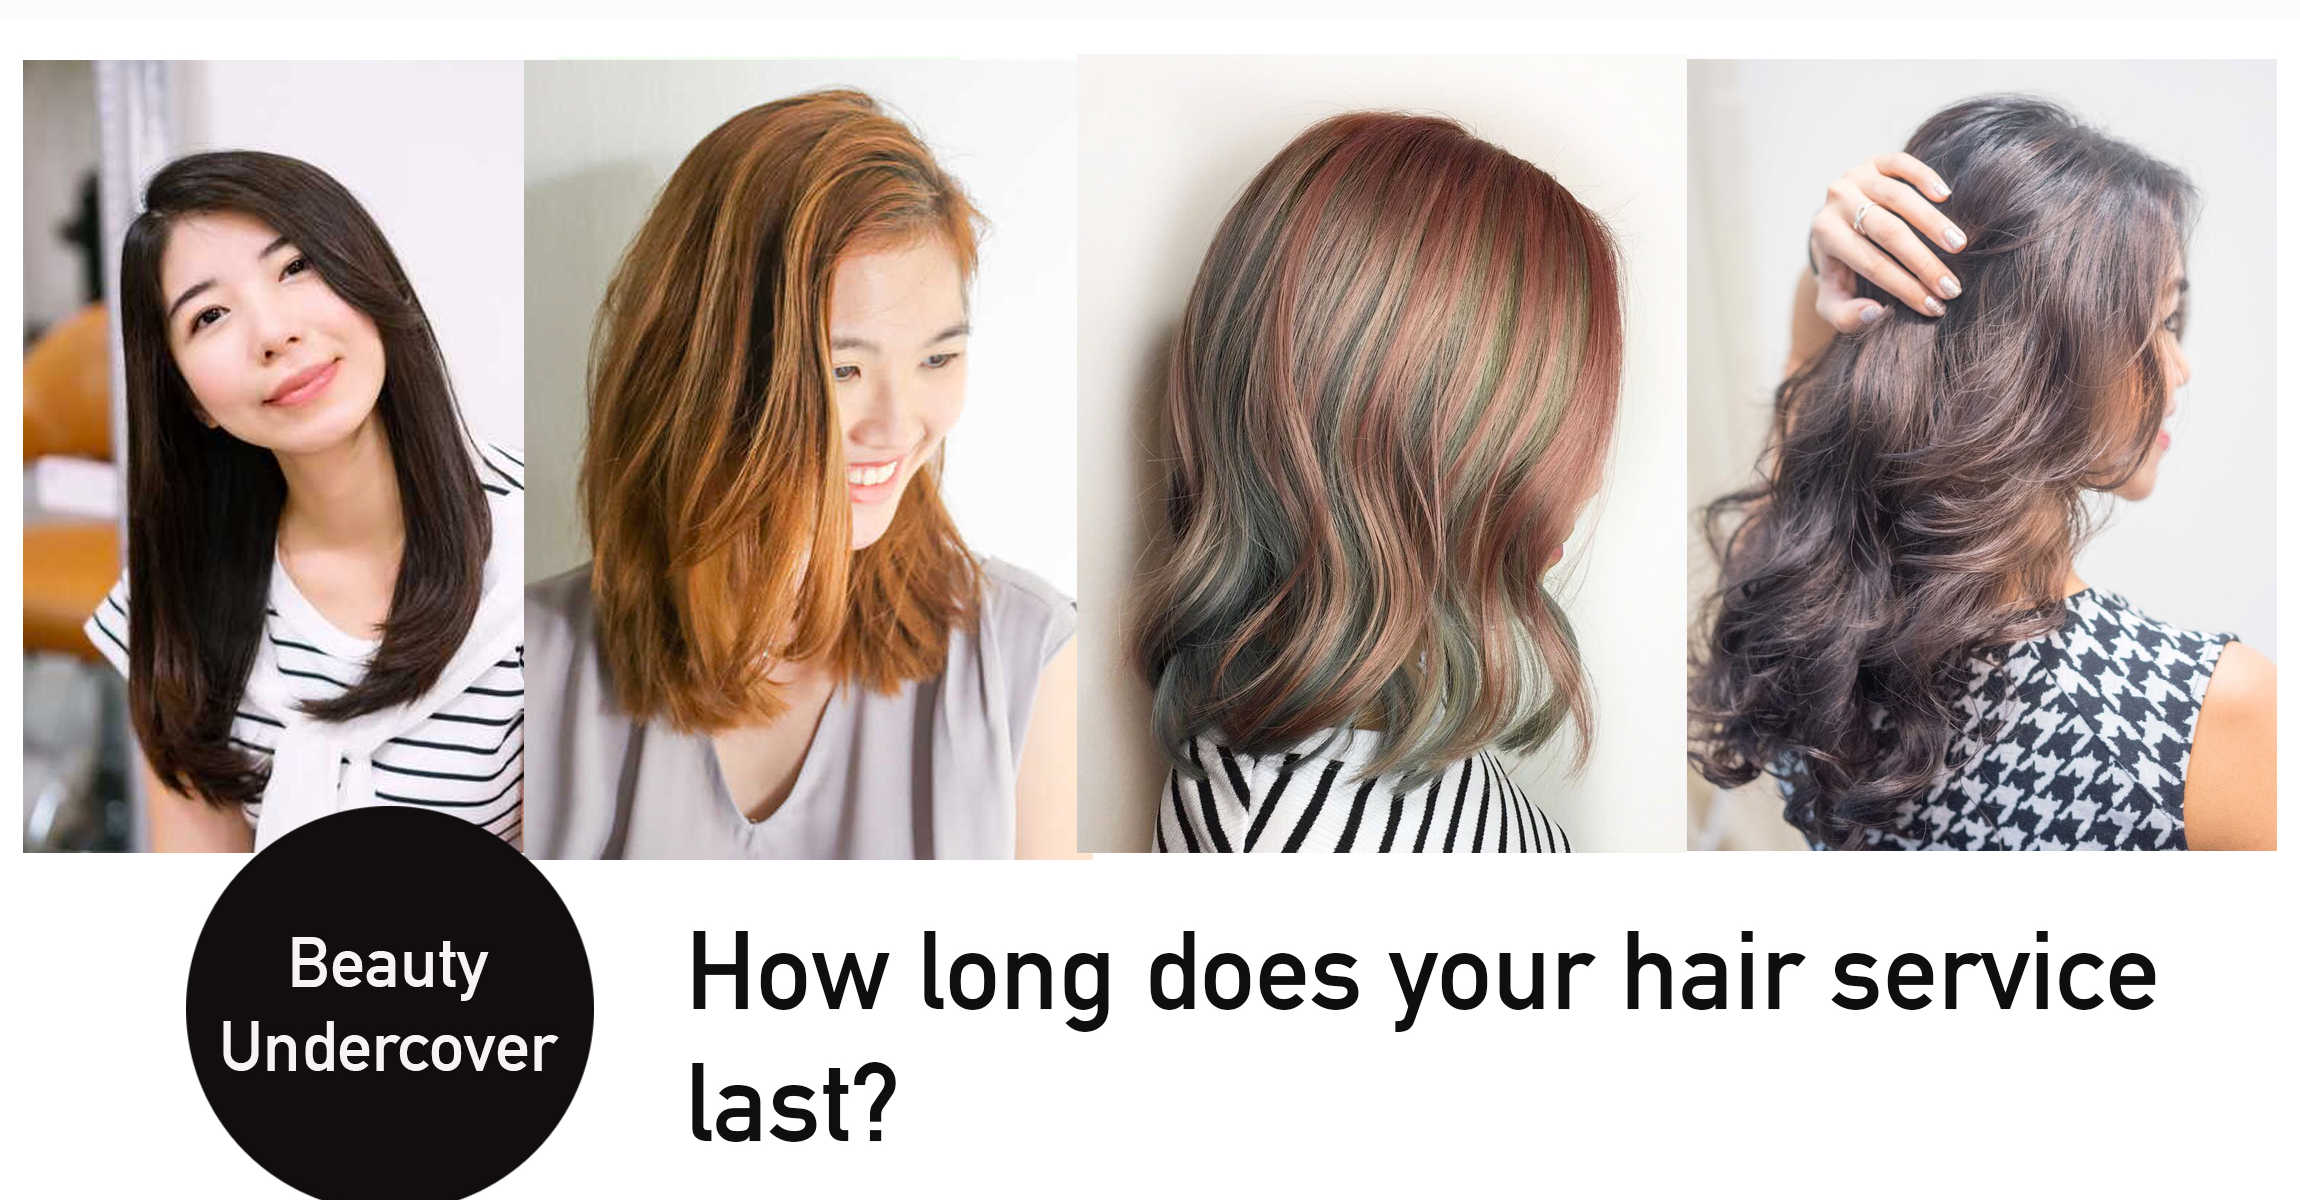 Straight perm how long does it last - Do You Know How Long Your Hair Service Can Last